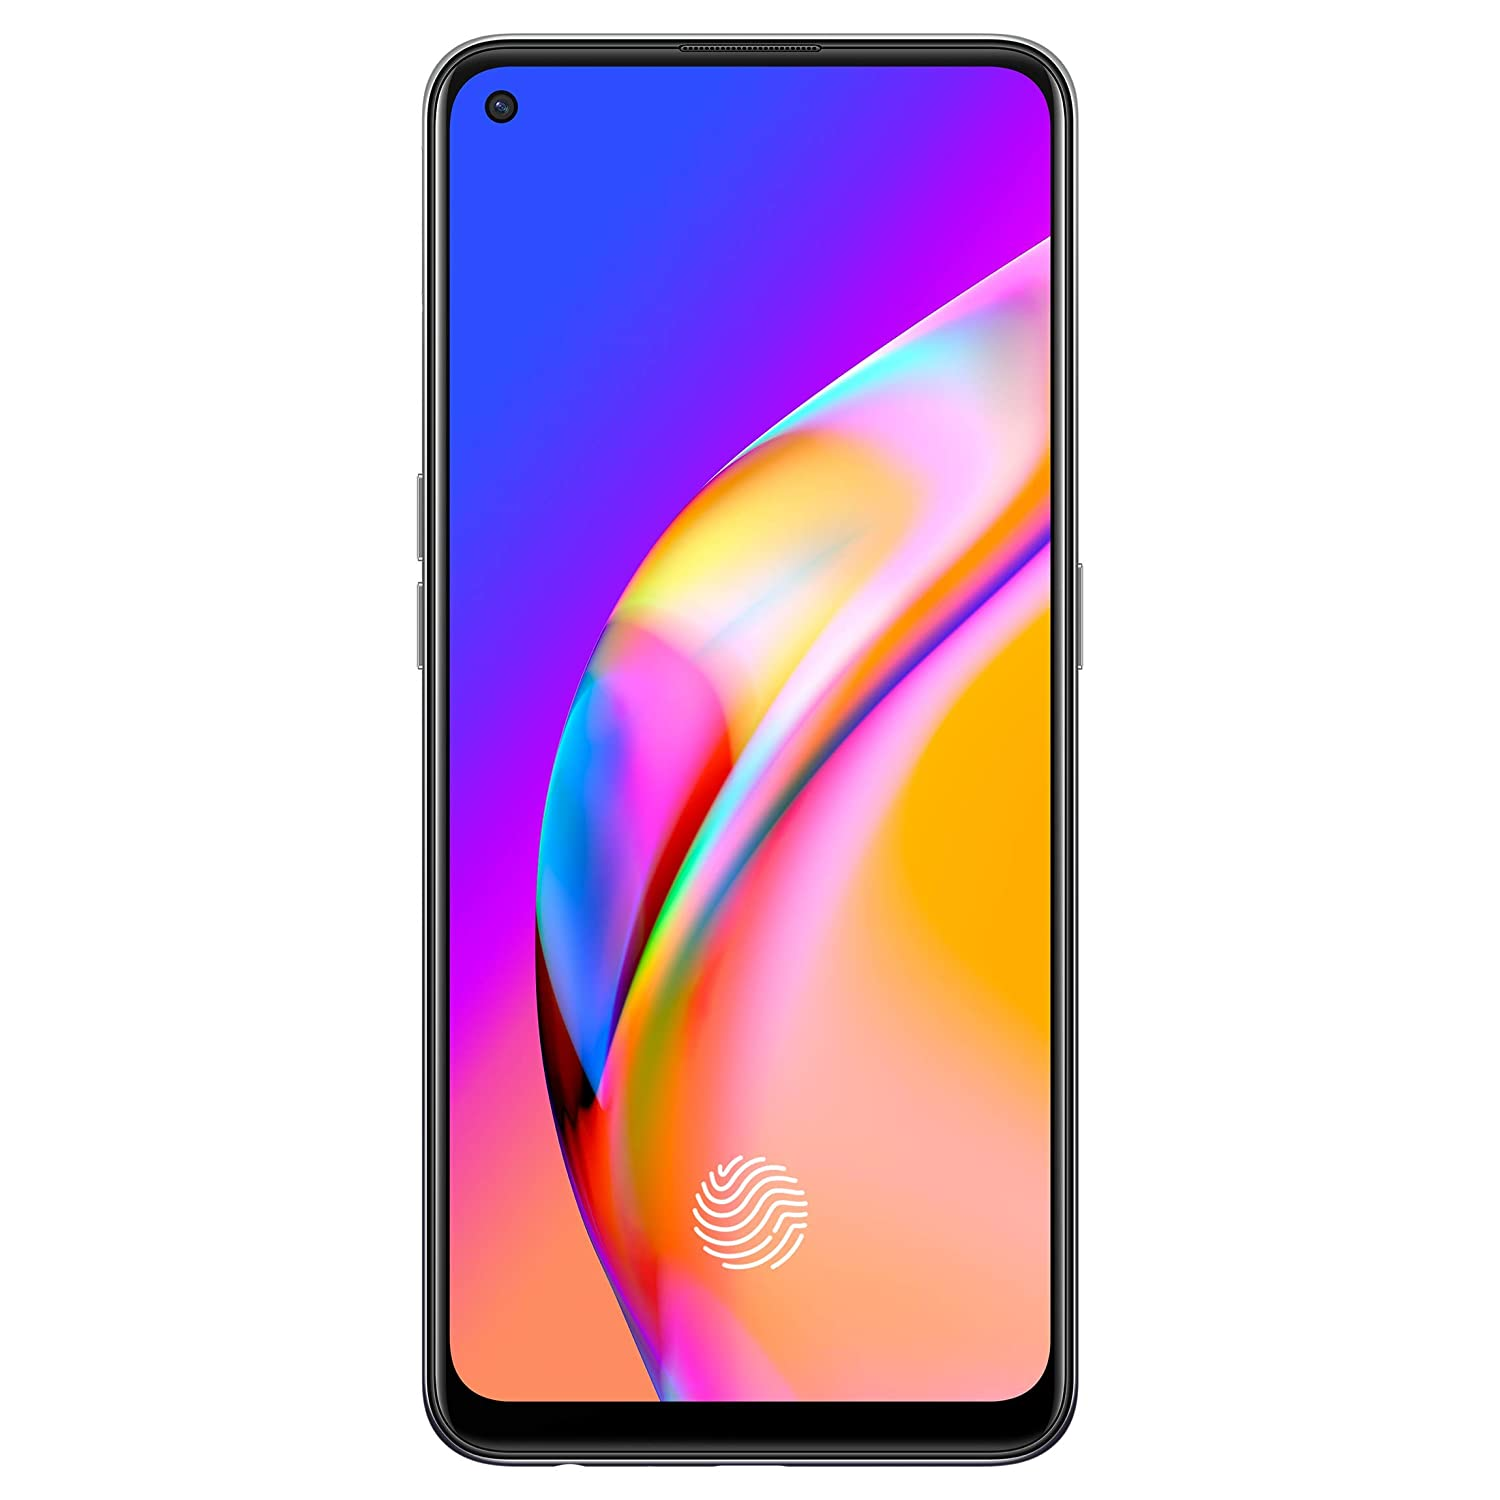 Just Launched: Oppo F19 Pro & F19 Pro+ 5G from Rs. 21,490 + Upto Rs. 2,000 Bank OFF